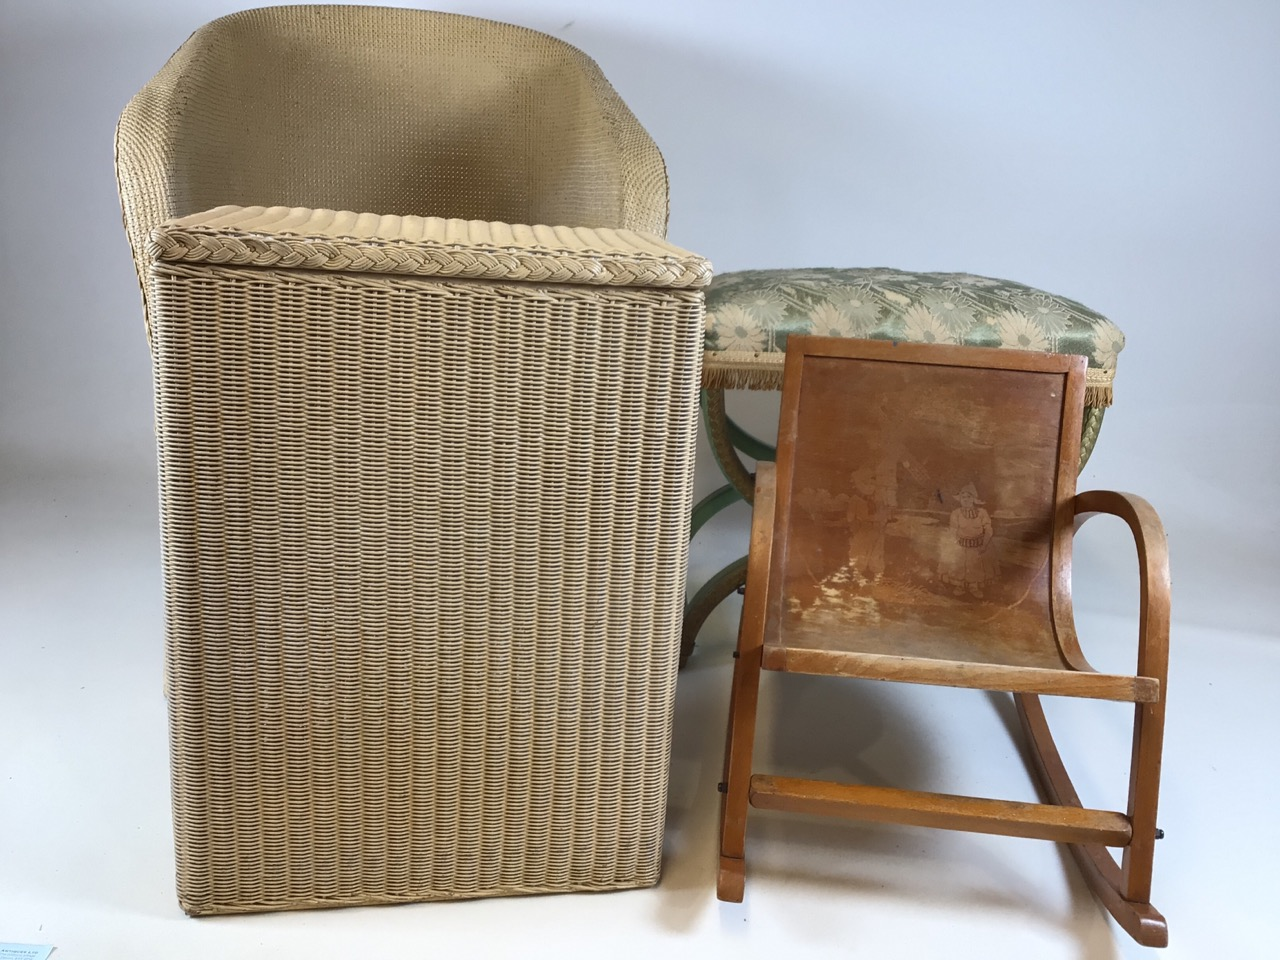 A Lloyd loom Lusty laundry basket also with a metal framed Lloyd loom style chair a bent wood childs